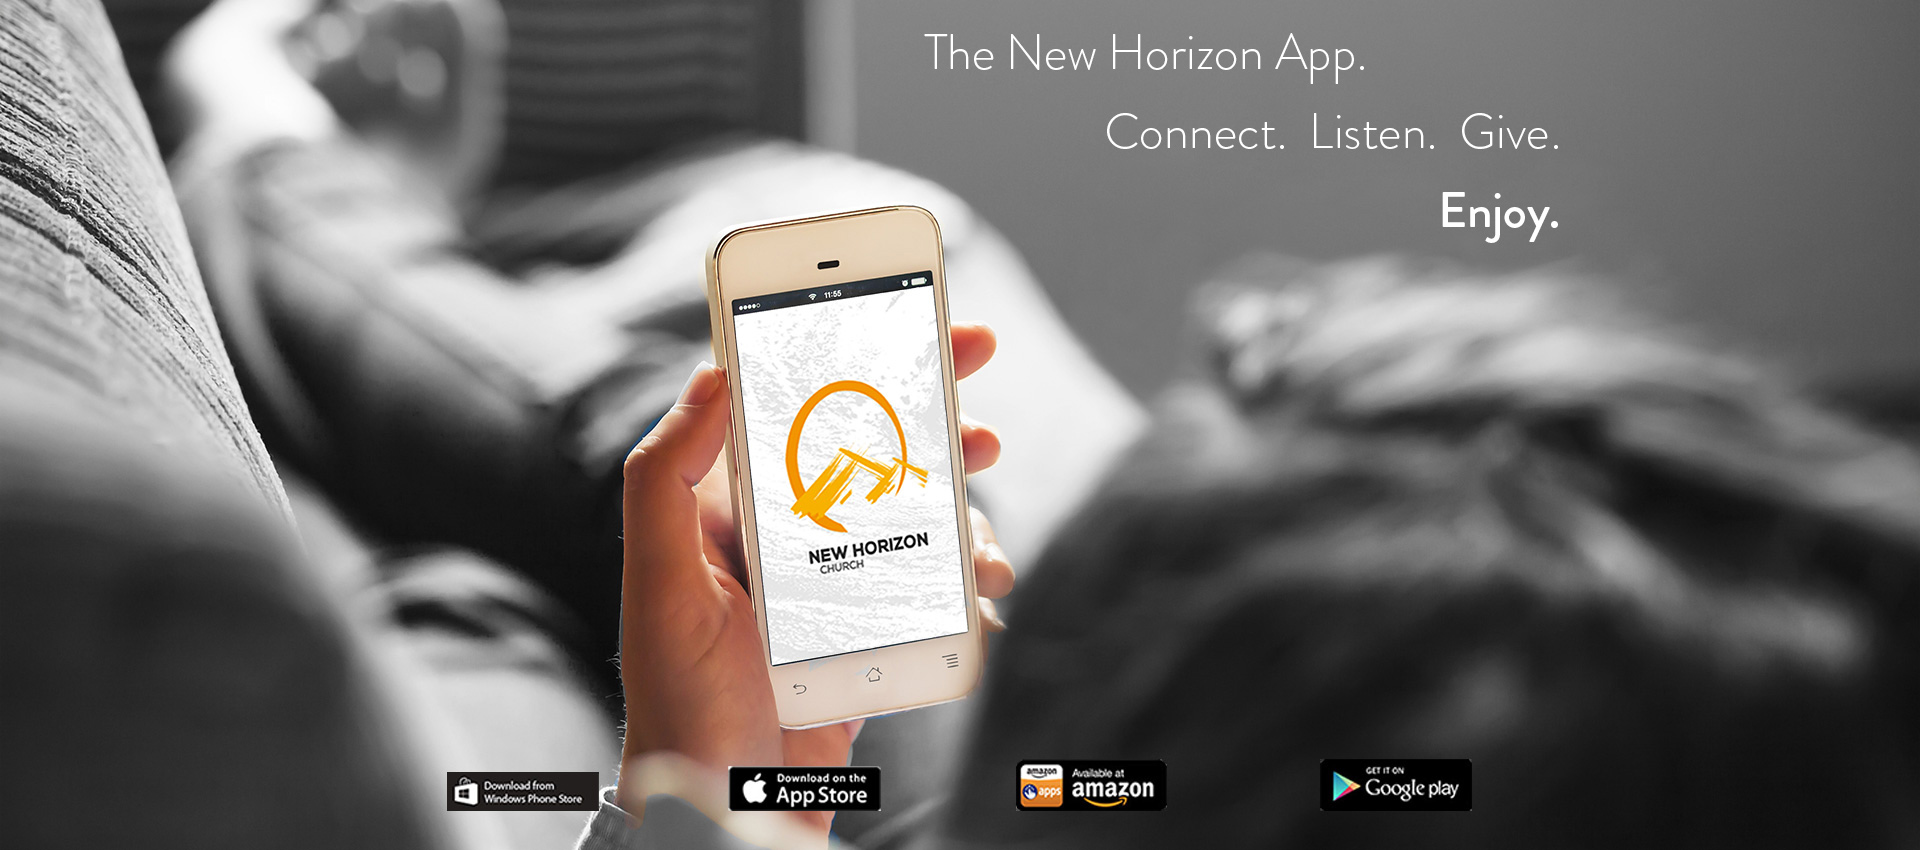 New Horizon App - Amazon, Android, Windows, iPhone